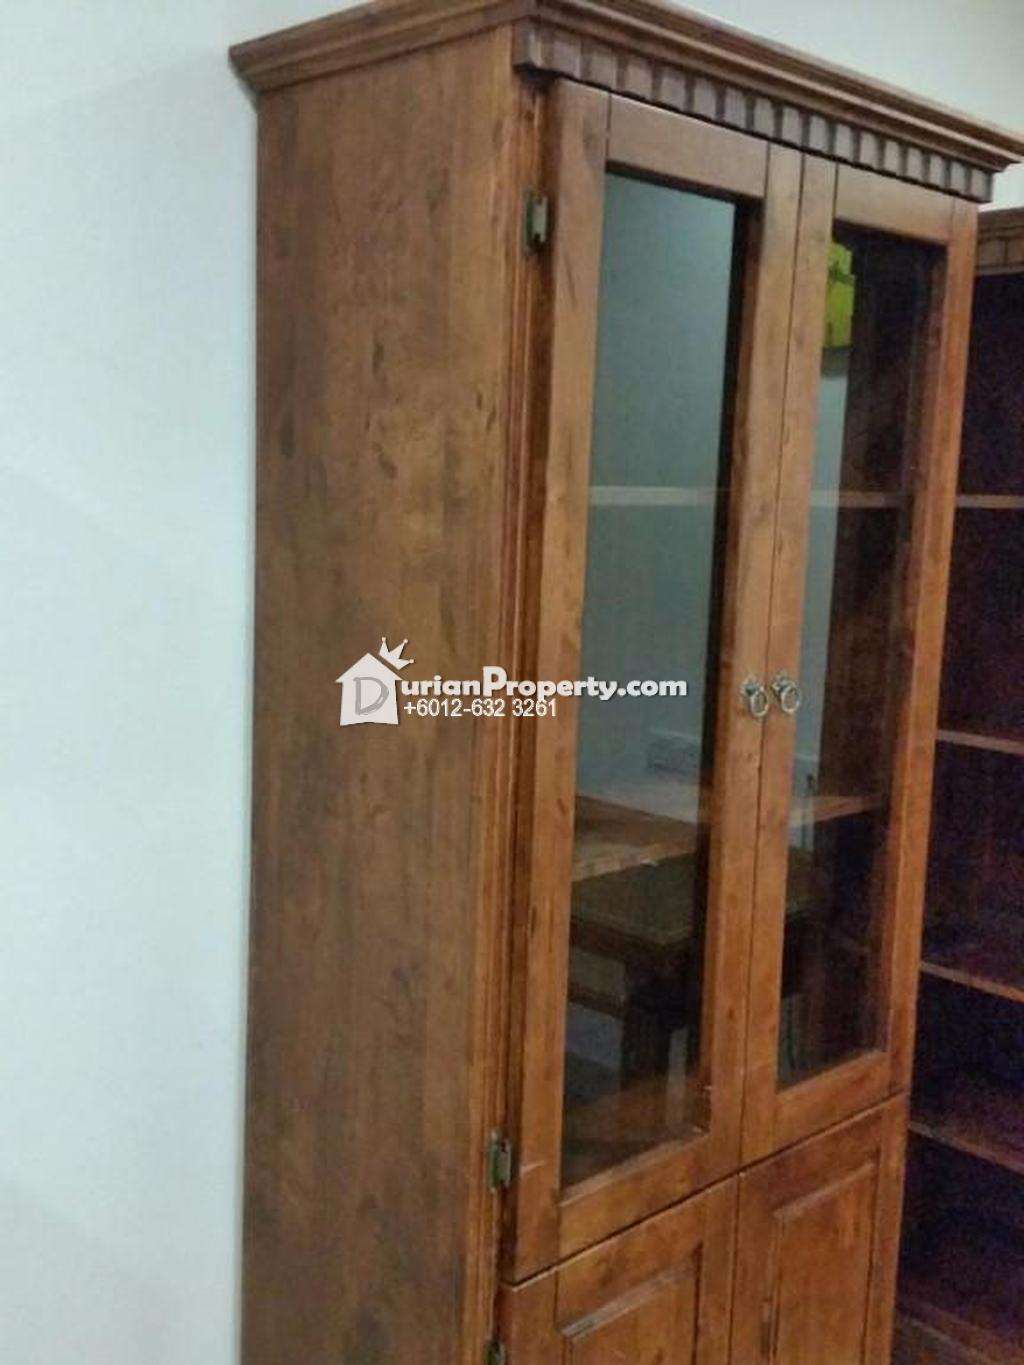 Book Shelves and Display Shelf with glass cover For Sale